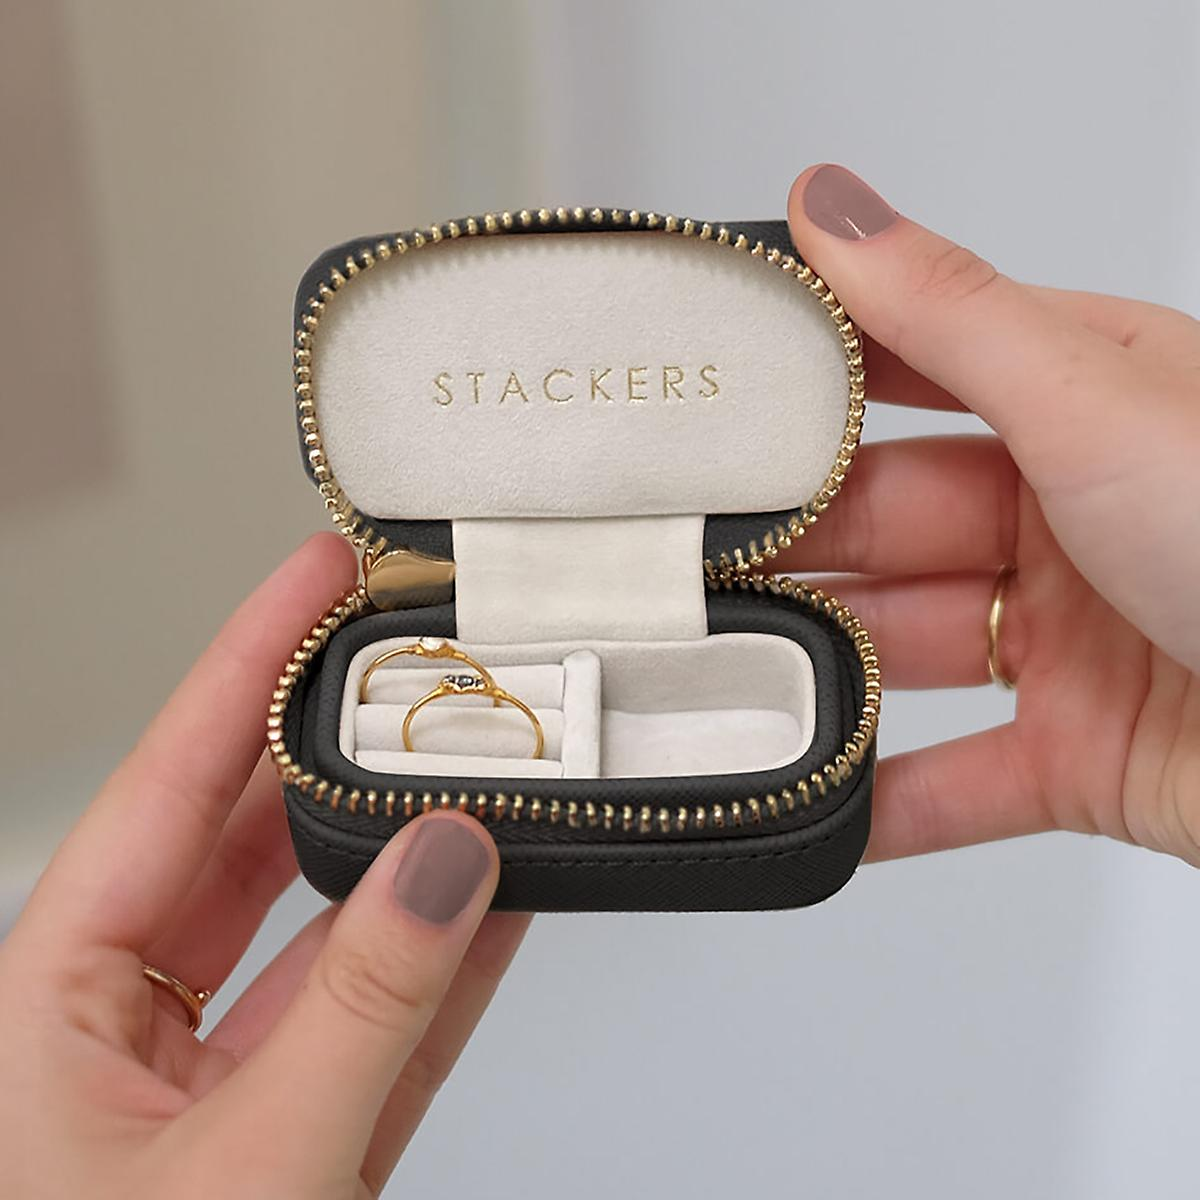 Stackers Black Mini Travel Case